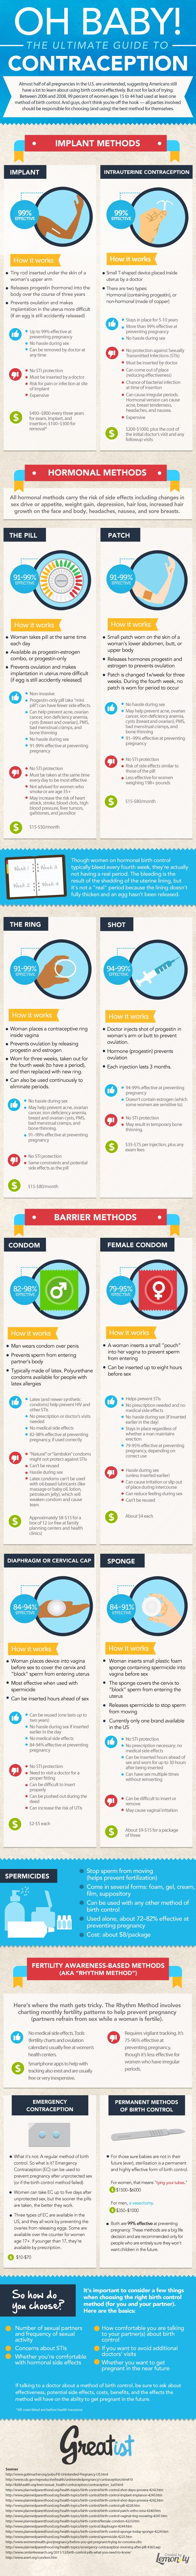 the-ultimate-guide-to-contraception_50d48d1253dca